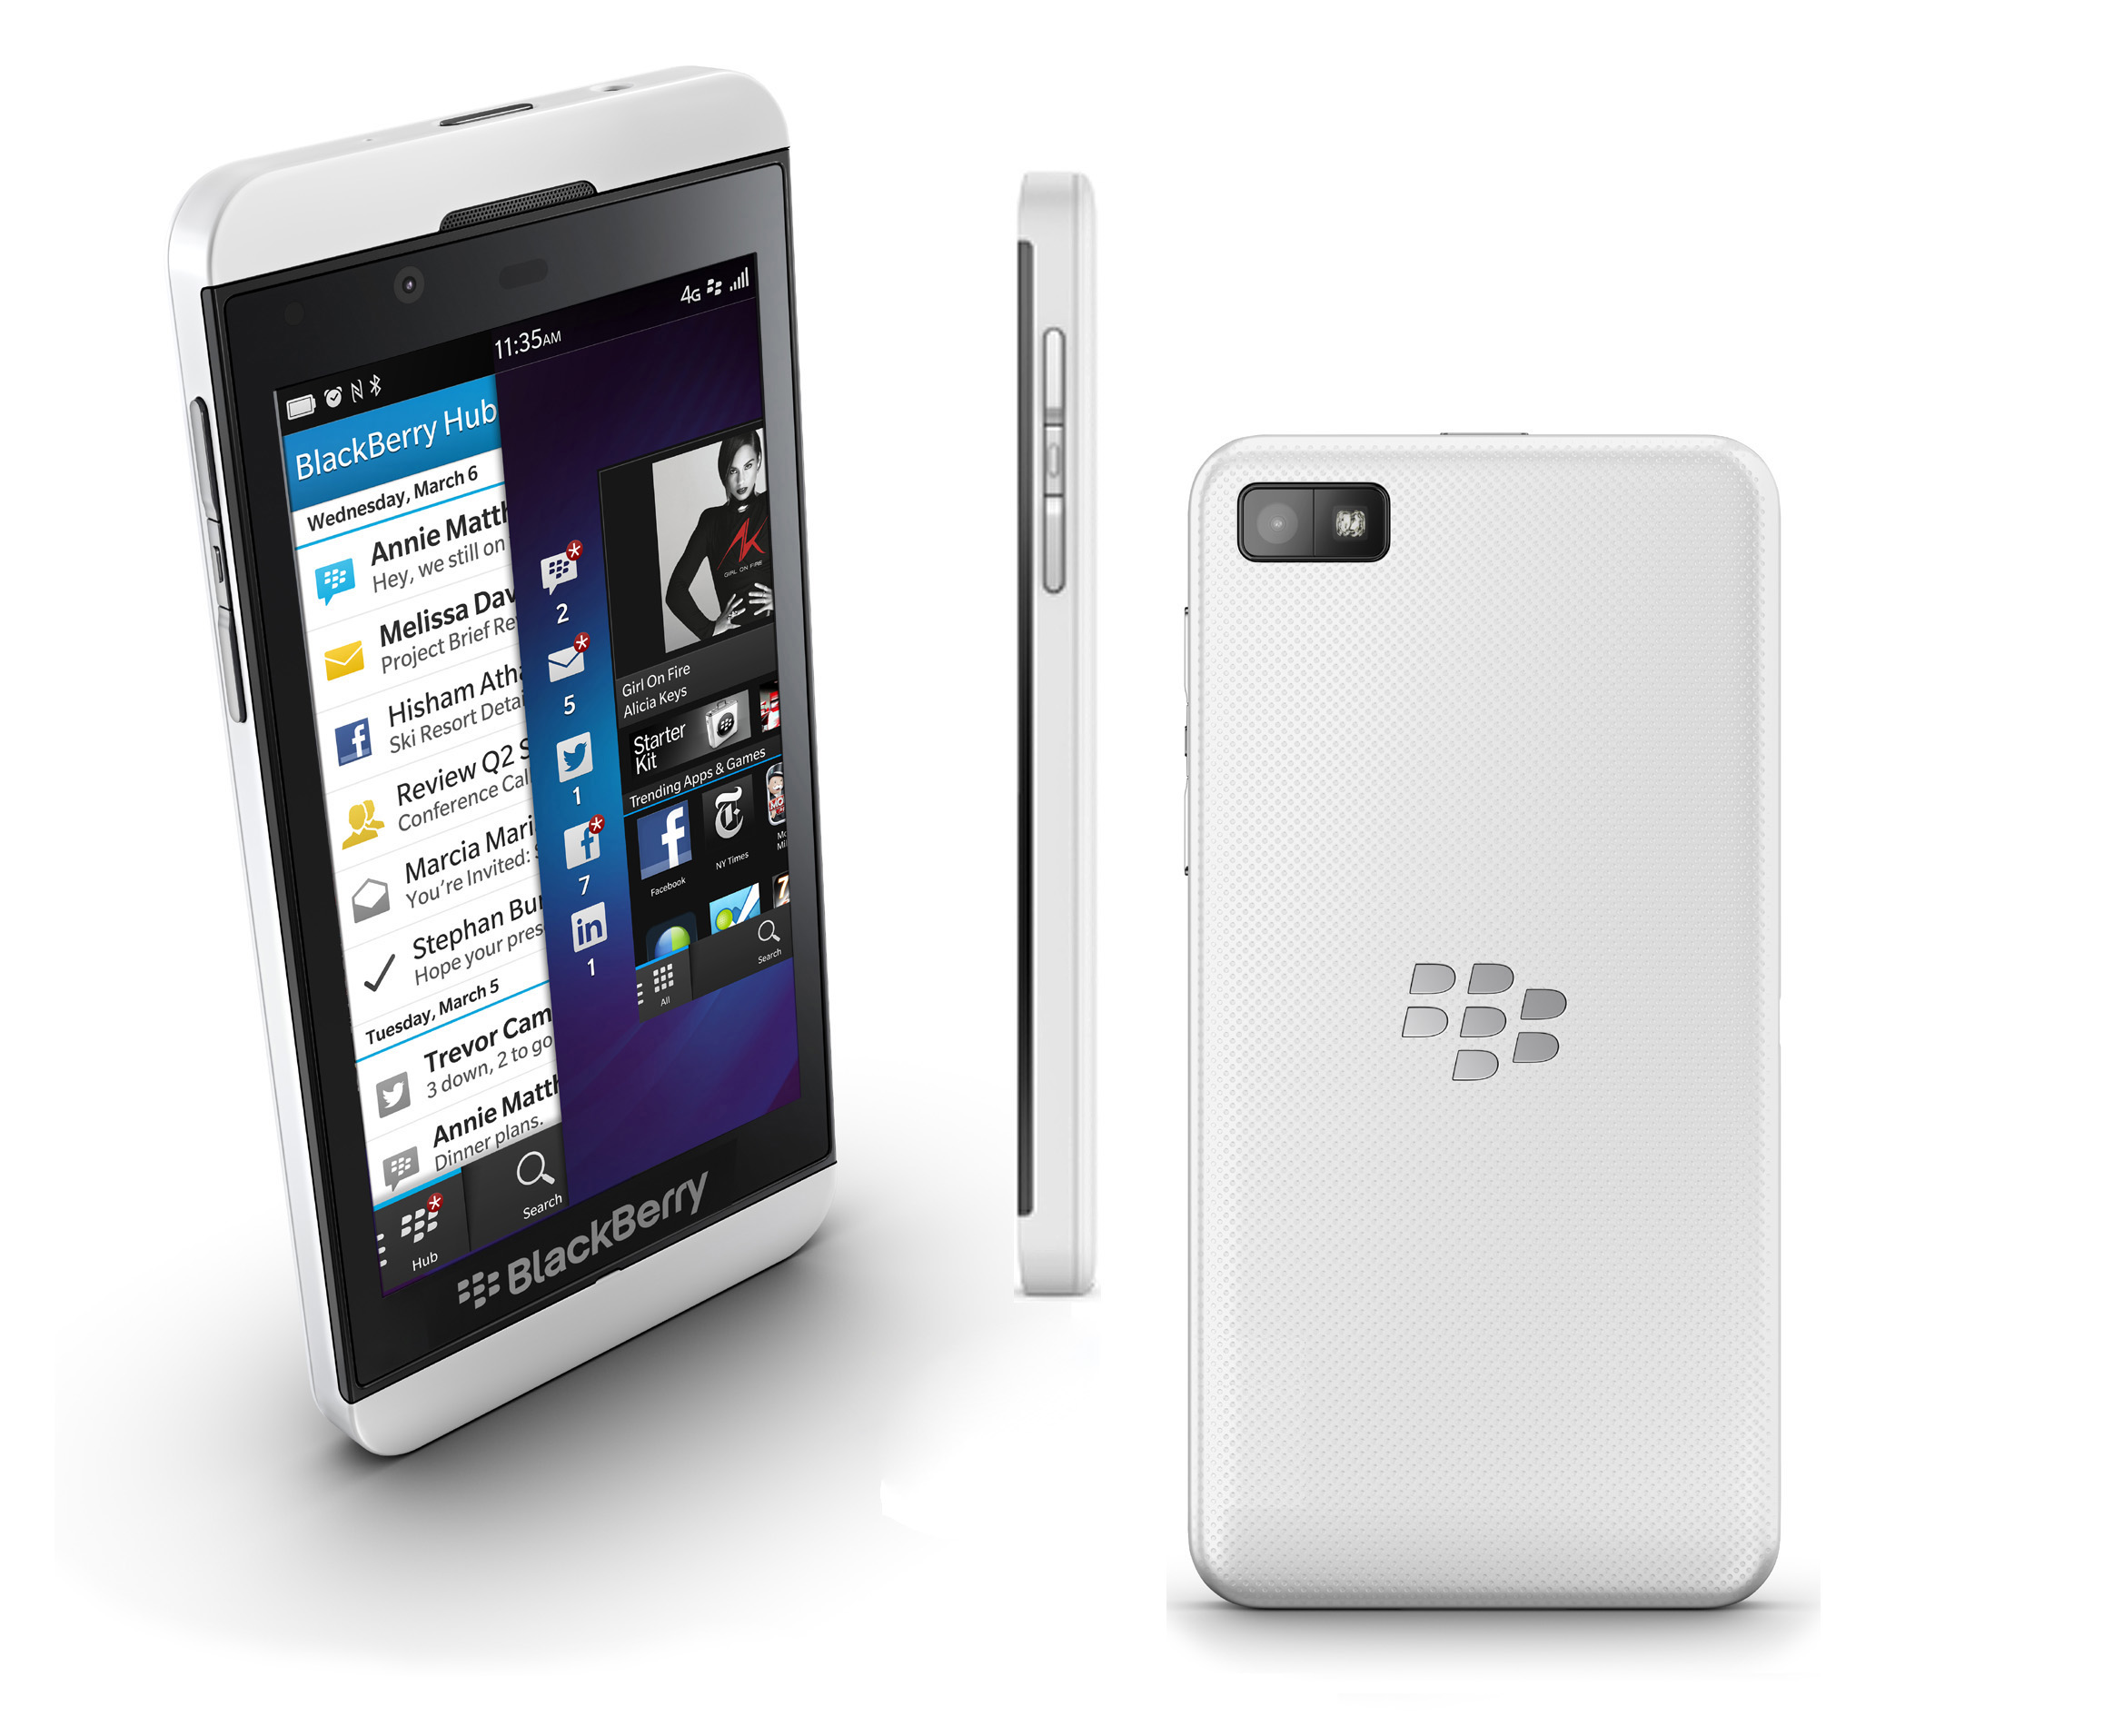 Whiteblackberryz10 Review: Blackberry Z10 Wired How To Delete Photos On  Facebook